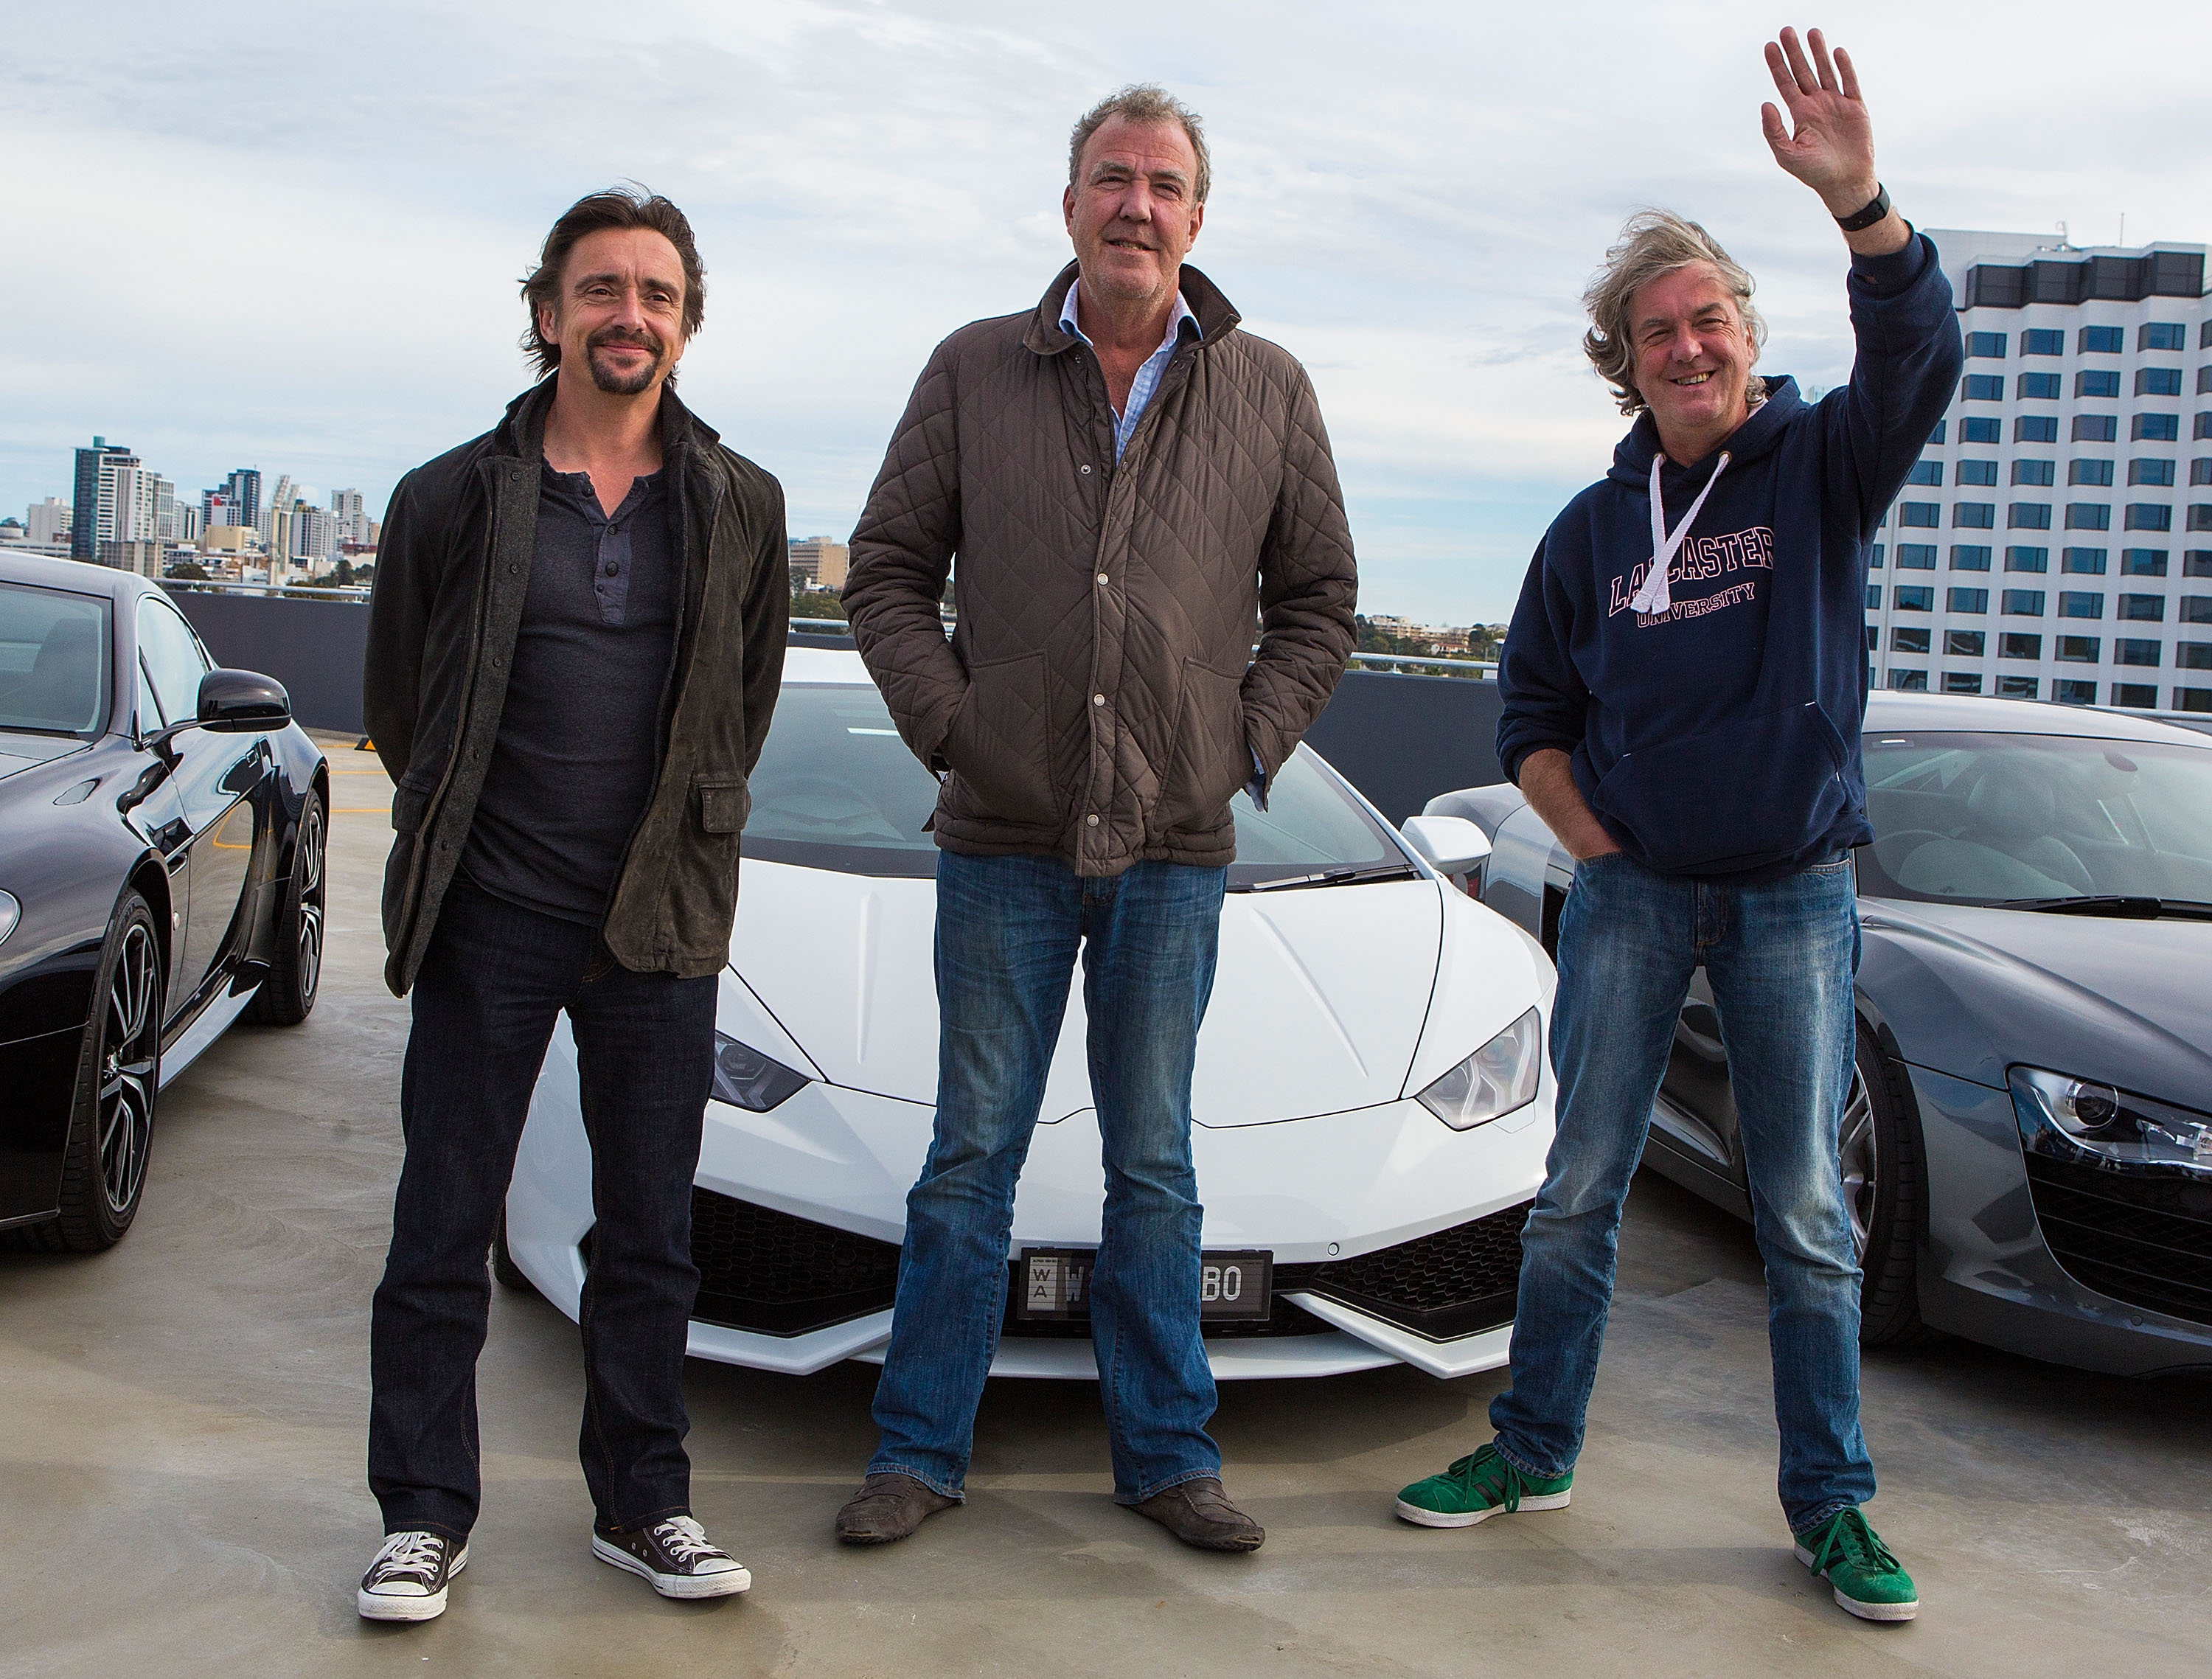 The Grand Tour season 3 trailer: Richard Hammond narrowly escapes death and Jeremy Clarkson paints penises in the show – the boys are back